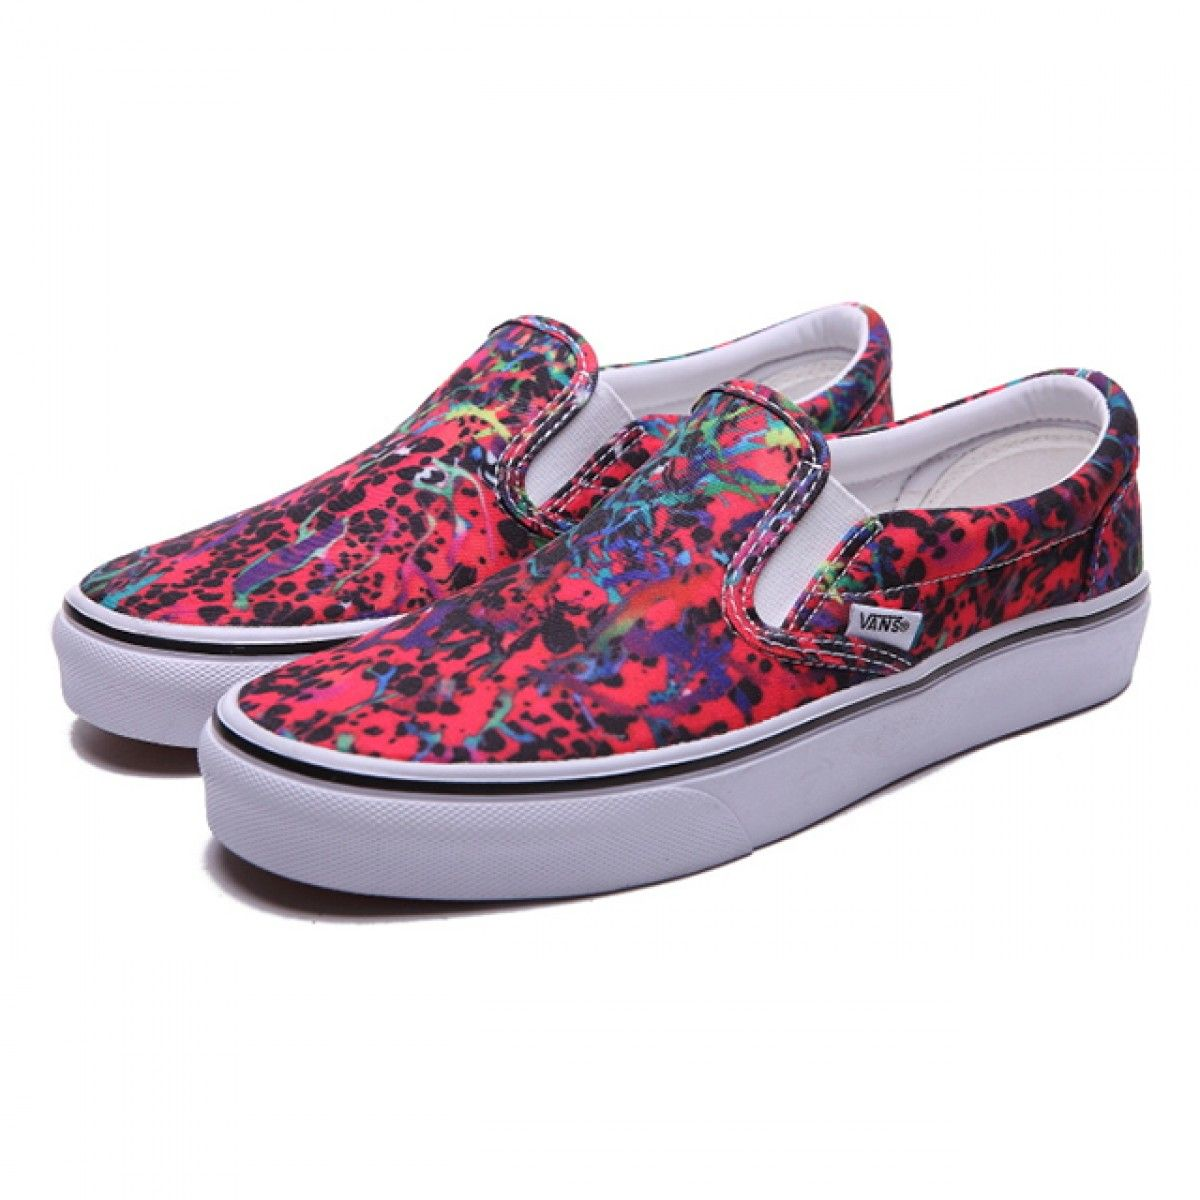 vans skate shoes womens red